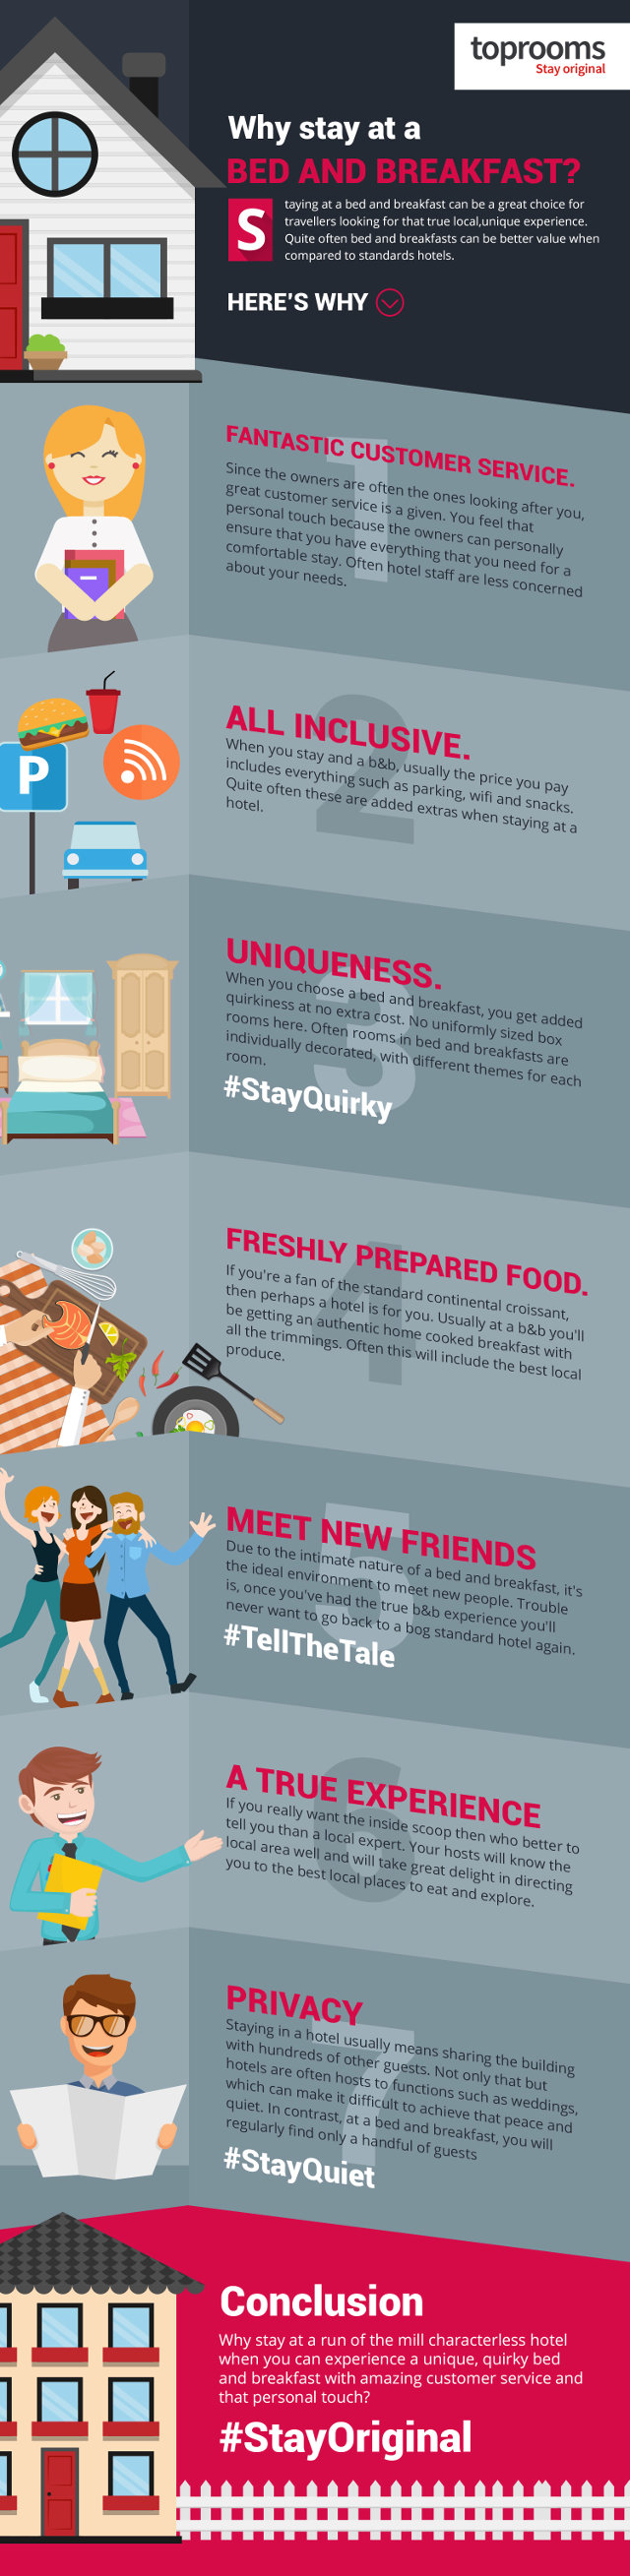 Bed and Breakfast infographic